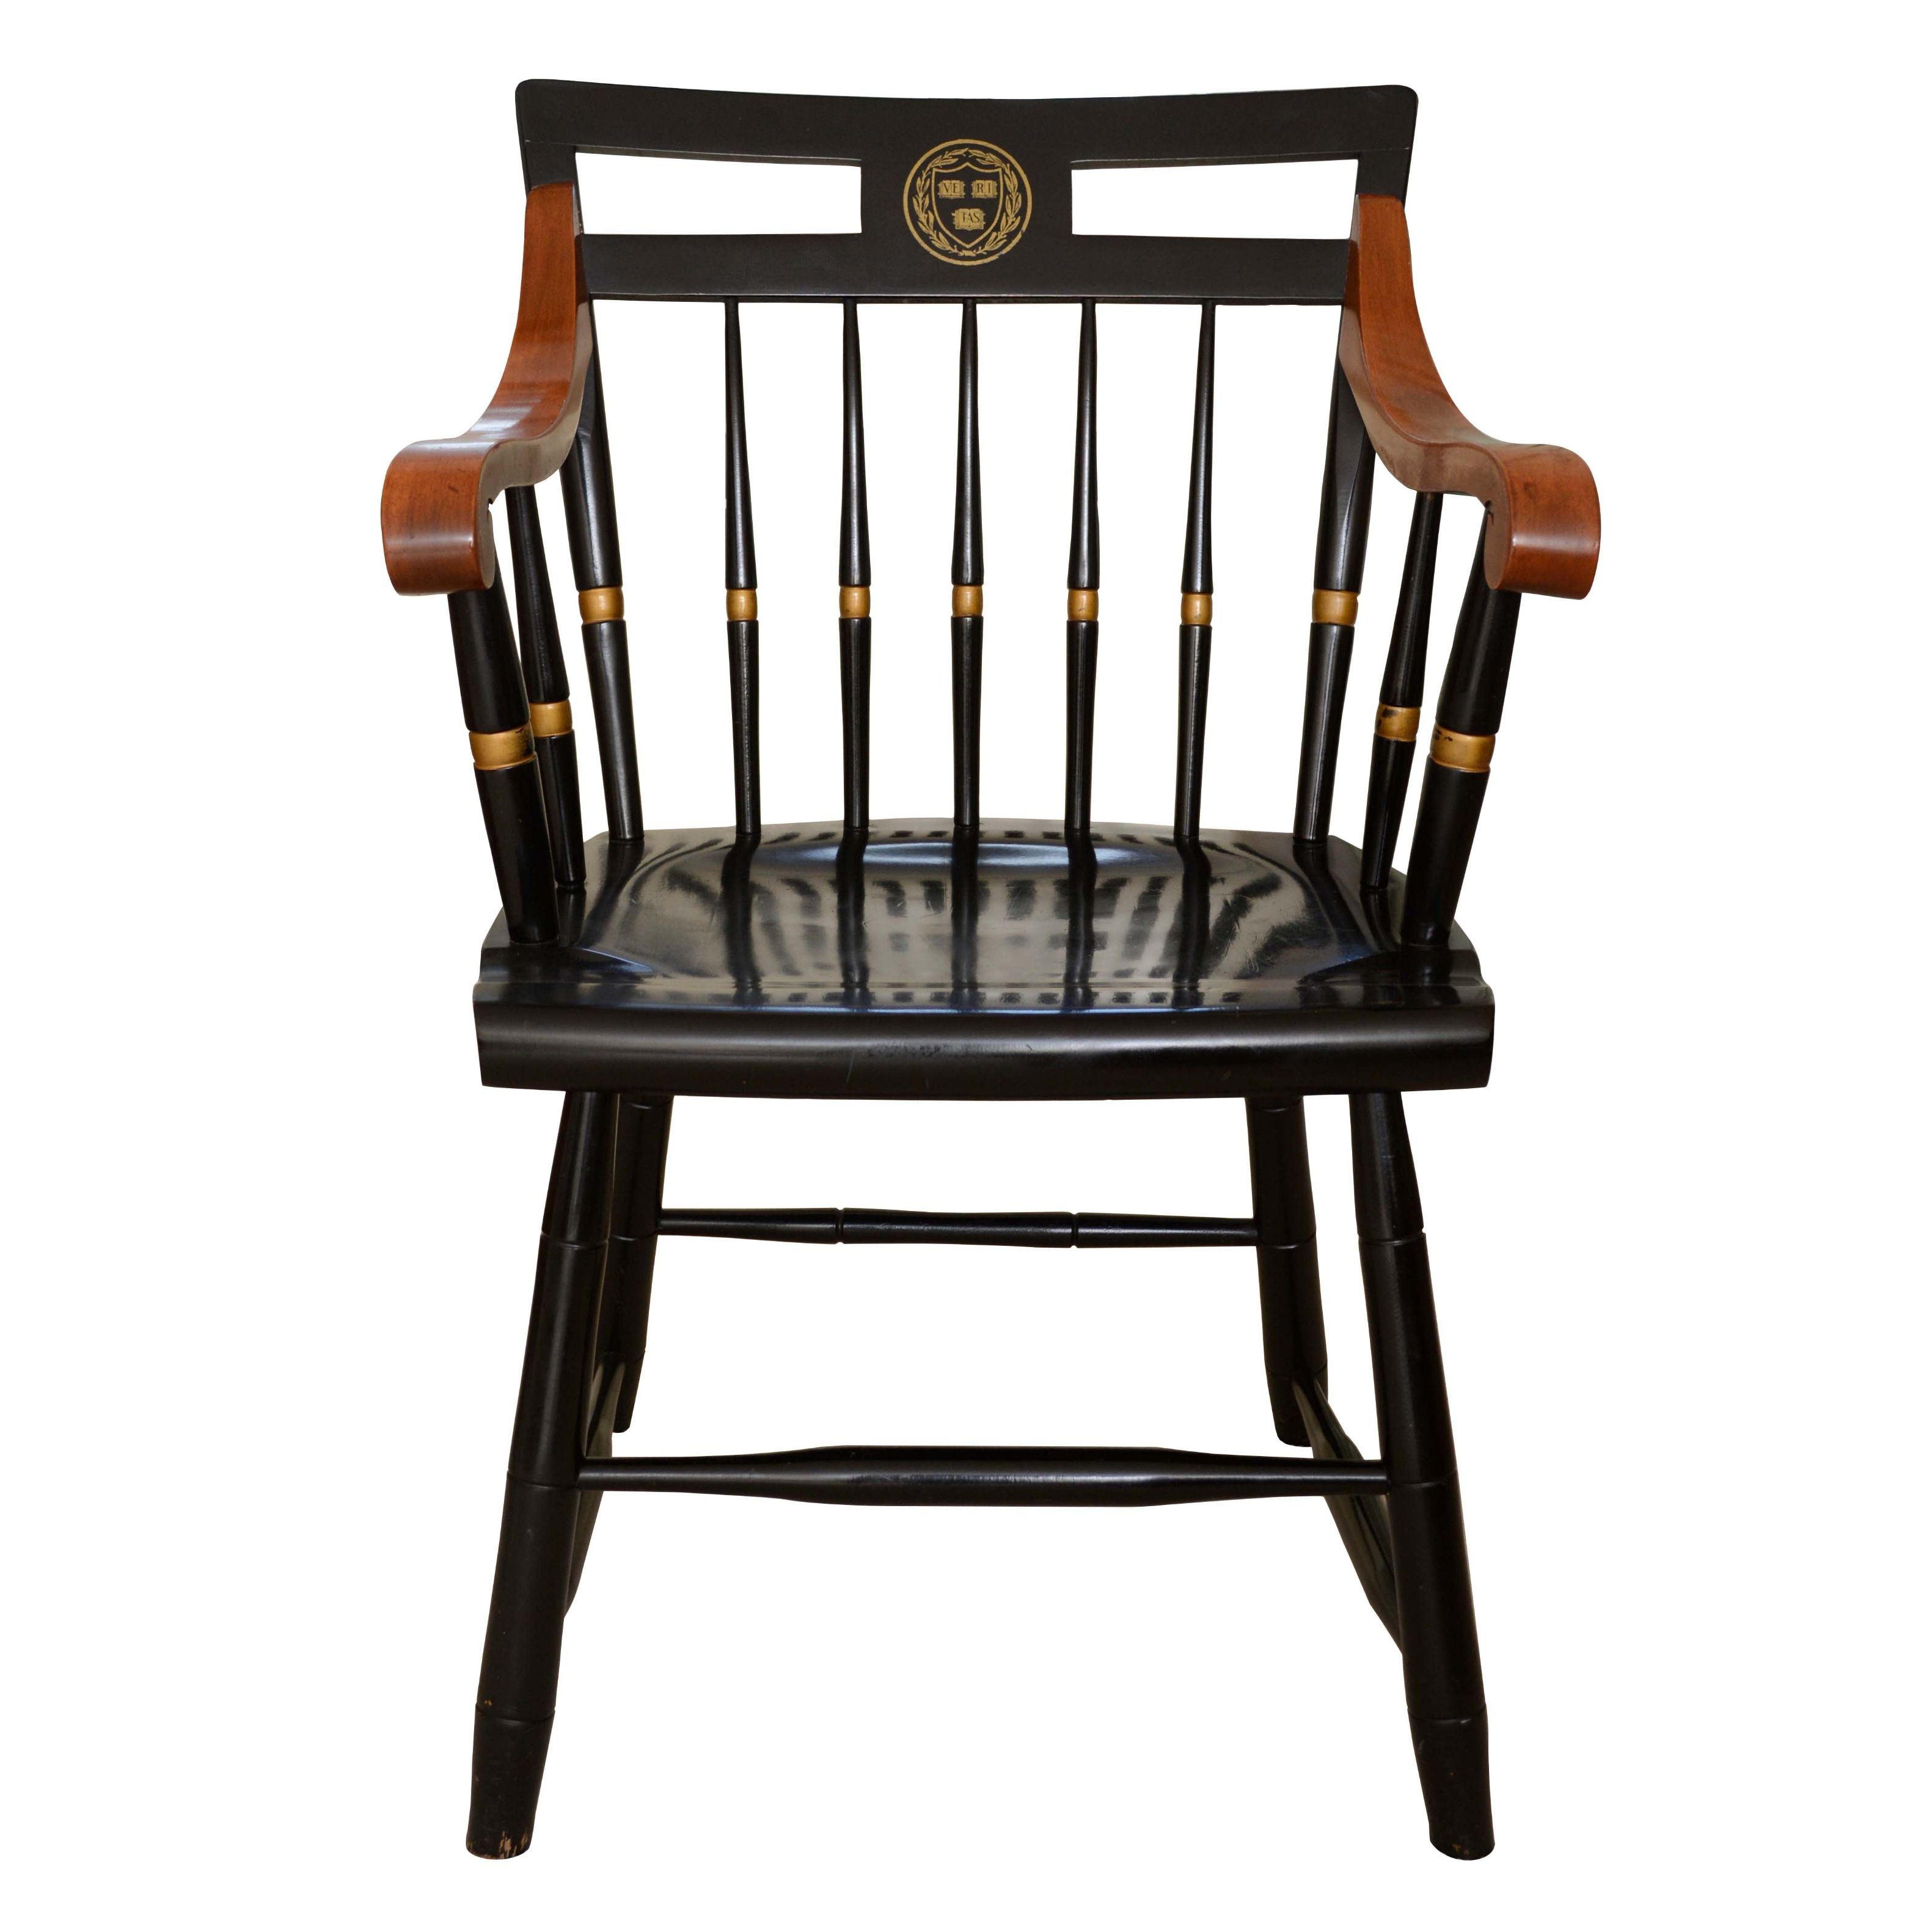 Harvard Recognition Chair by Nichols and Stone